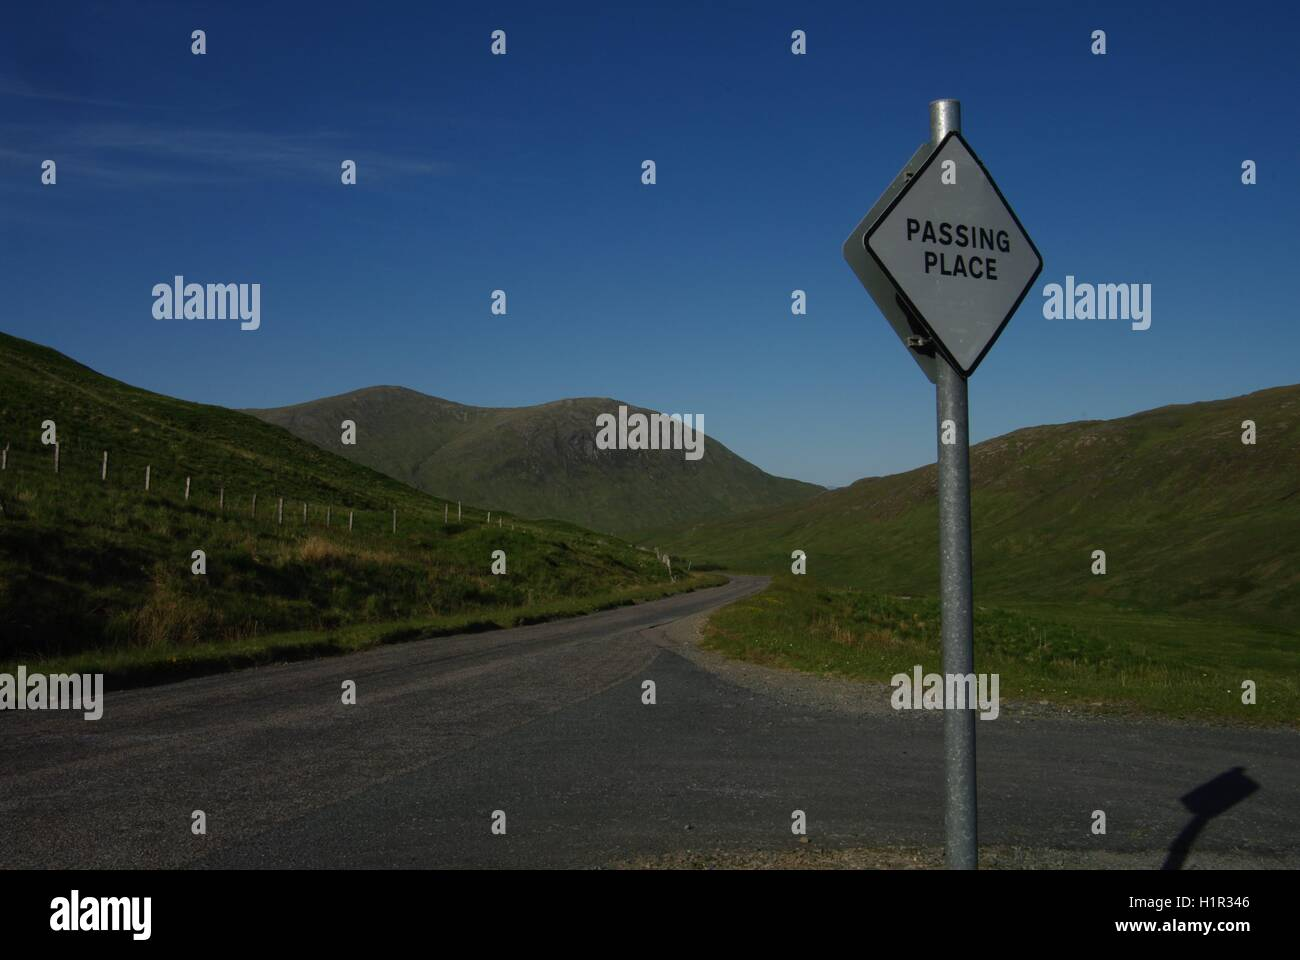 Passing Place, Glen More, Isle of Mull, Scotland - Stock Image